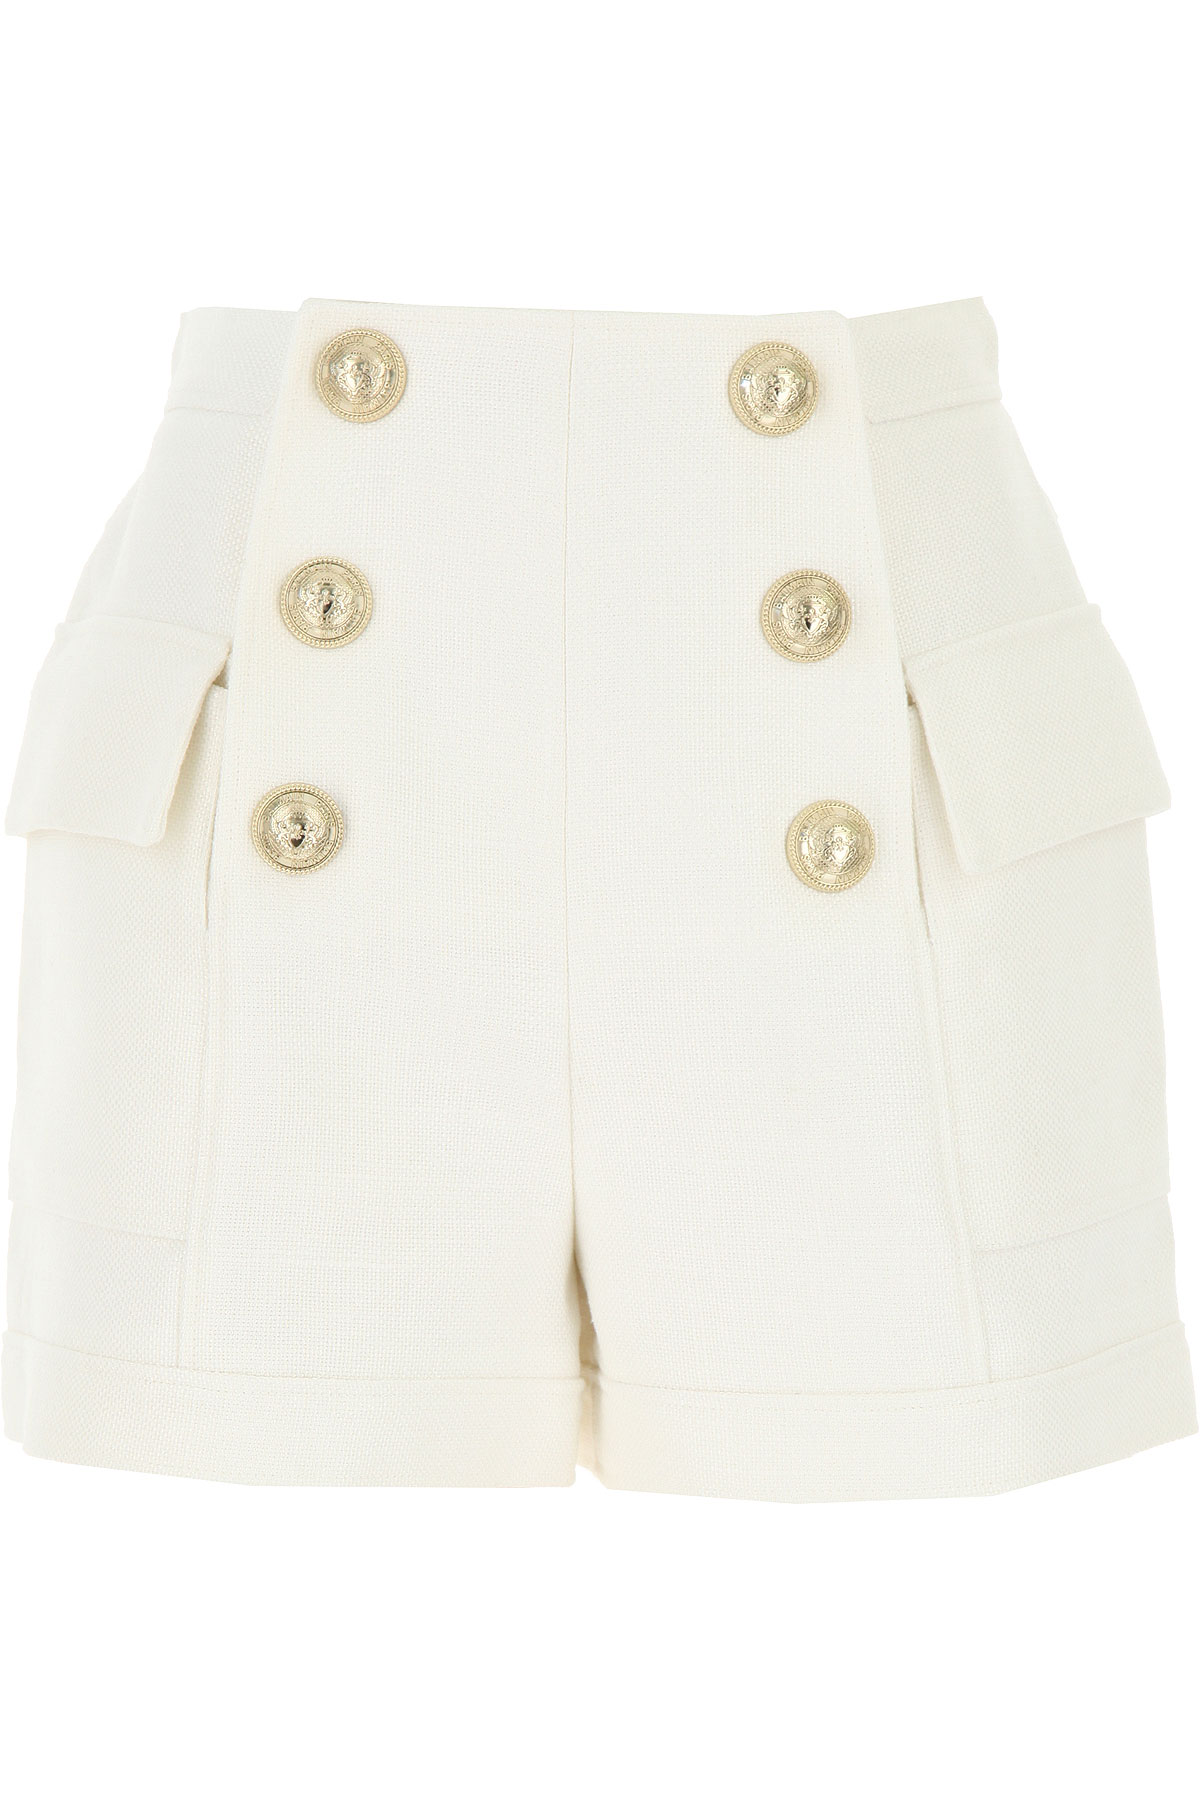 Balmain Shorts for Women On Sale, White, Viscose, 2019, 24 34